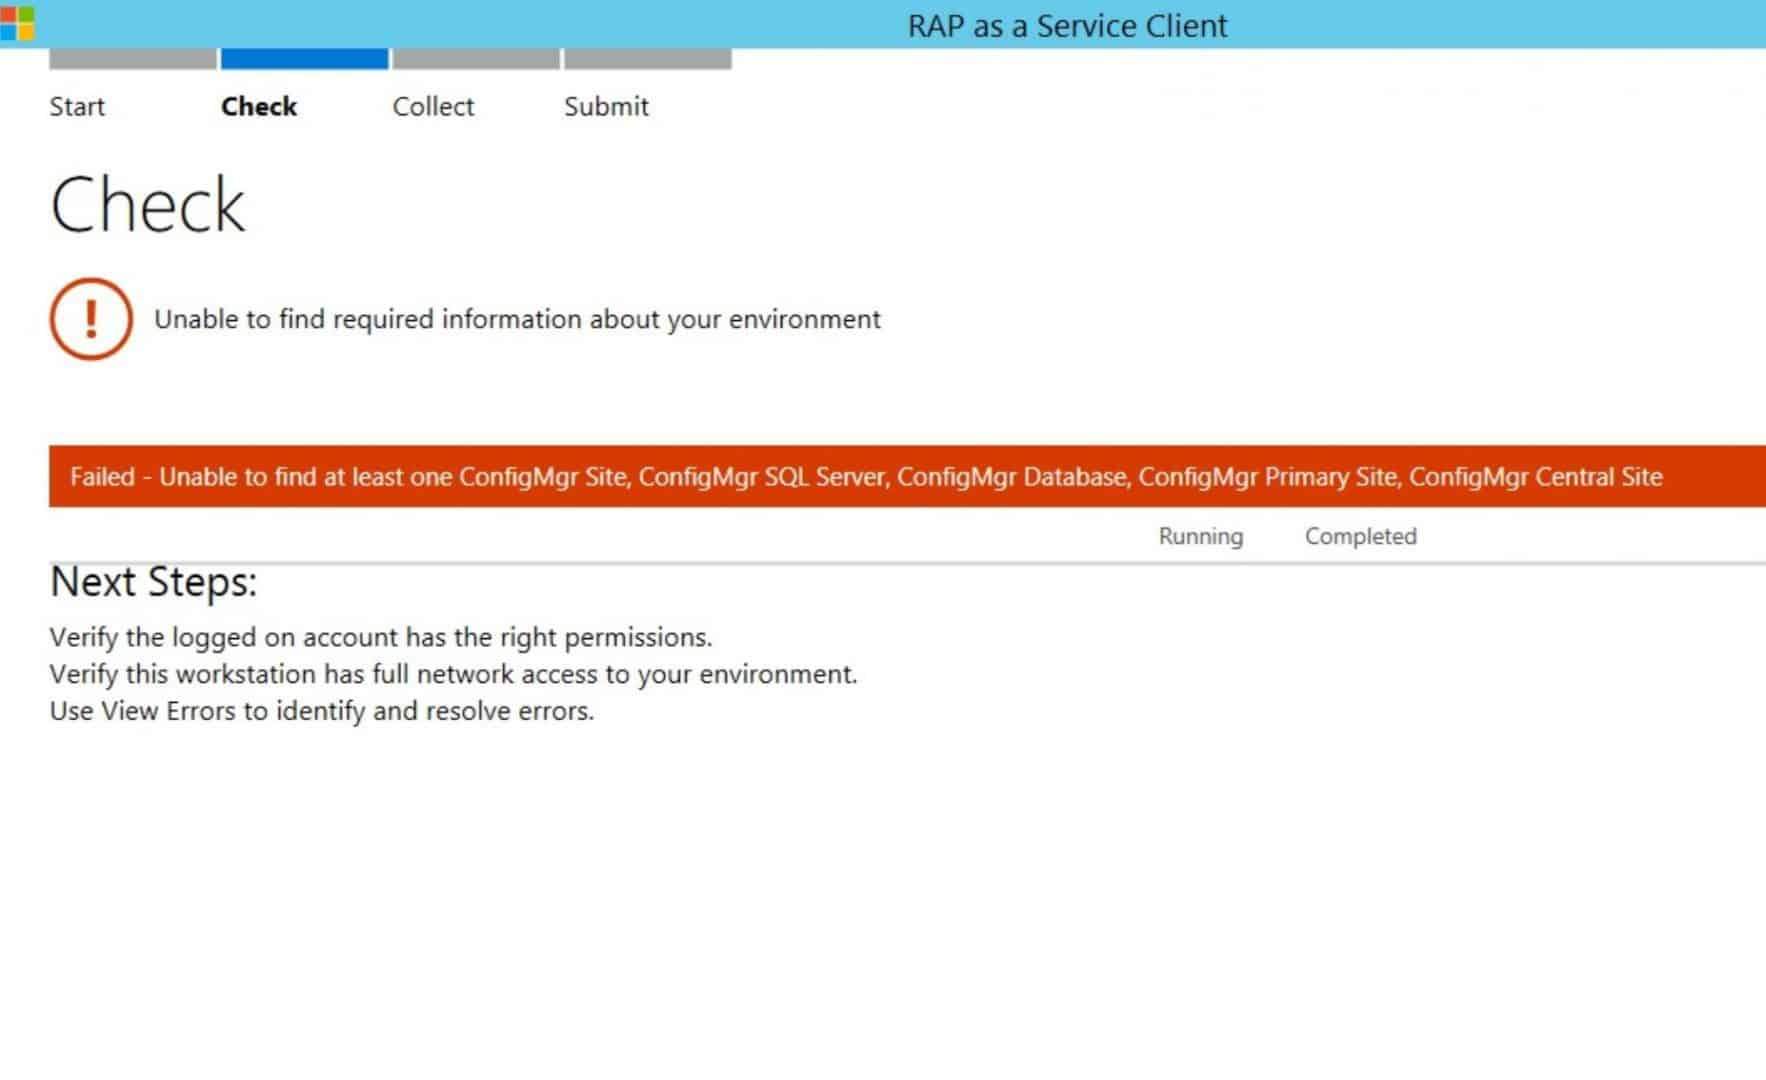 SCCM MS RAP Real World Tips for IT Pros